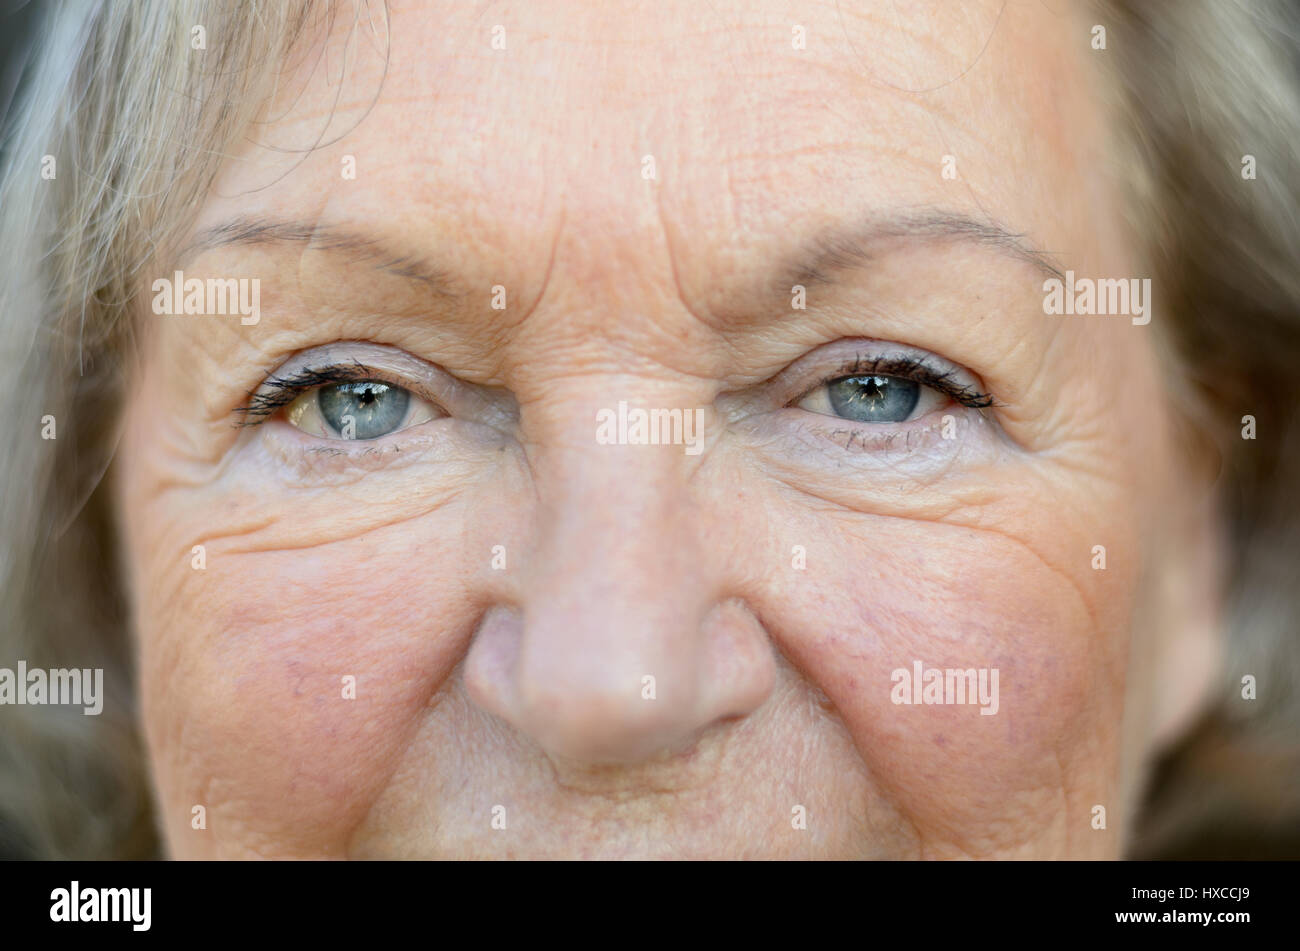 Close up on the aged and wrinkled face of an attractive senior woman with lovely blue eyes and greying blond hair - Stock Image